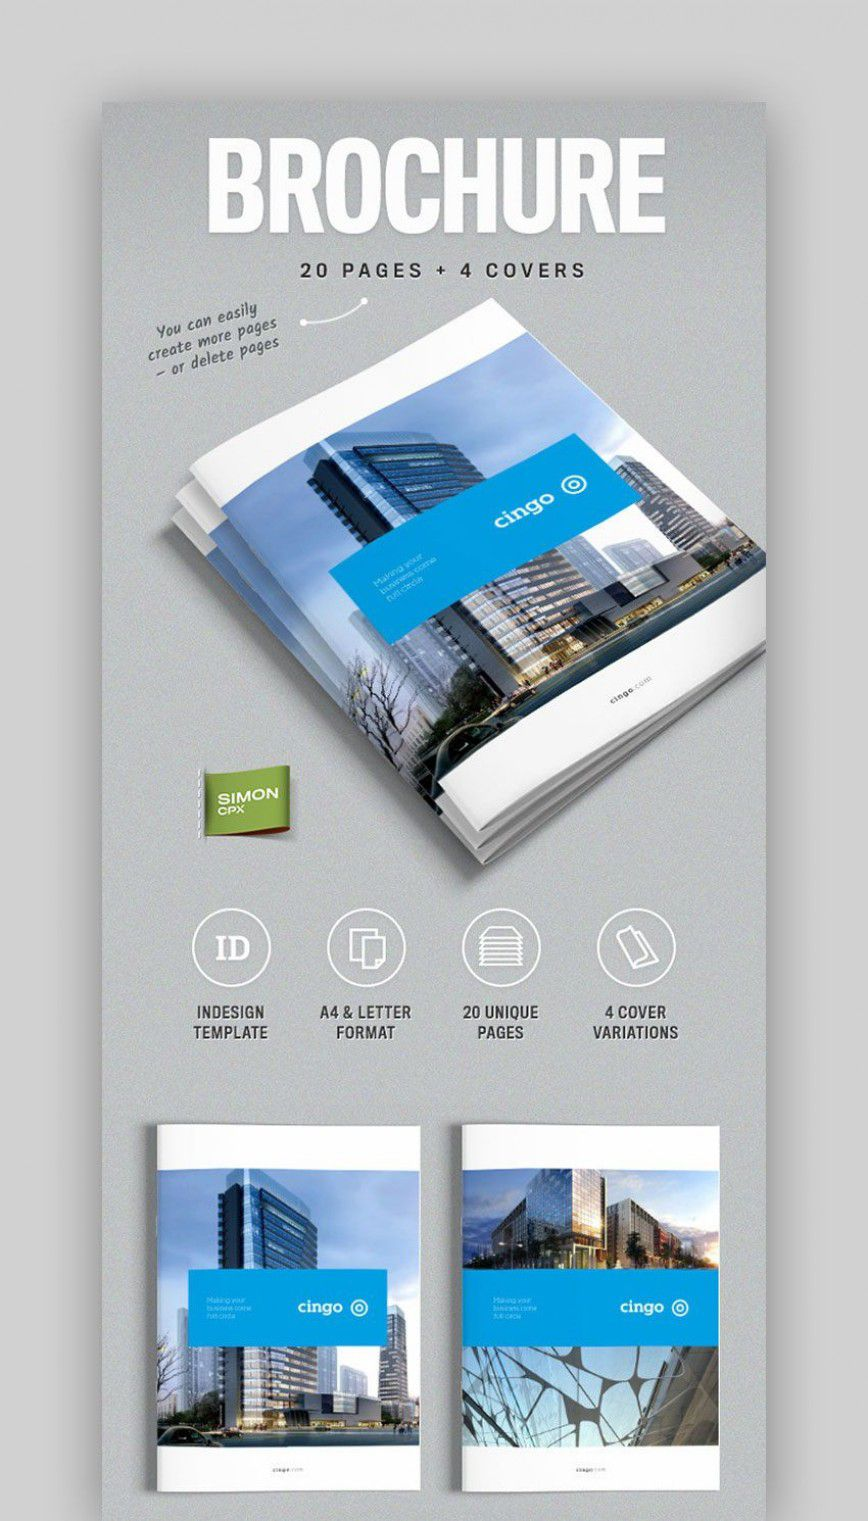 000 Unbelievable Adobe Indesign Brochure Template Free Download Image Full